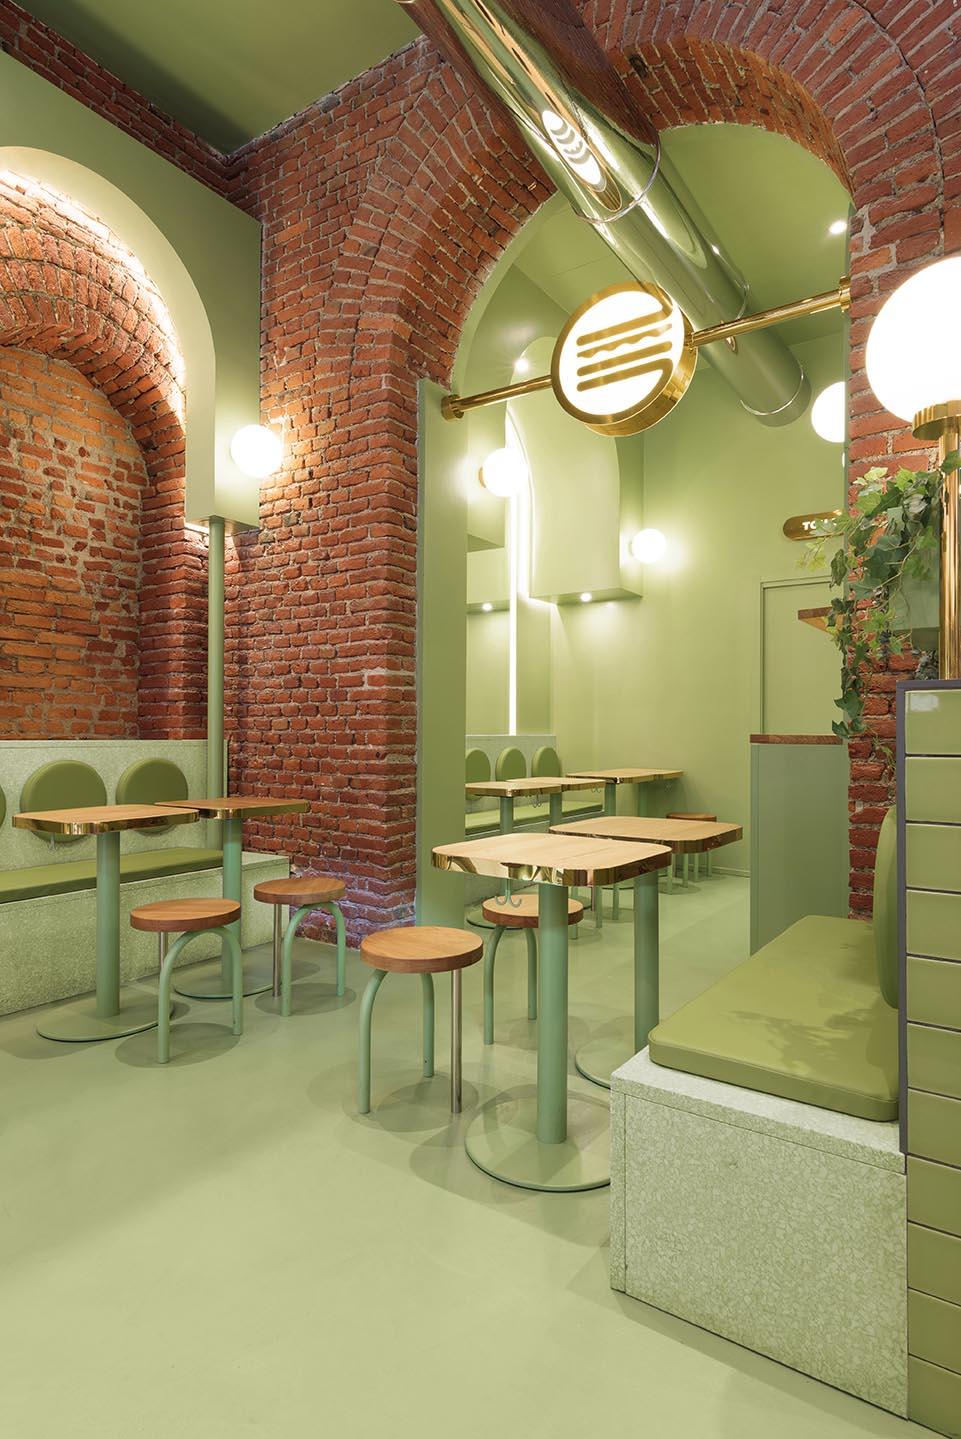 A new restaurant in Milan, Italy, uses a colorful green and brick interior to draw people inside.